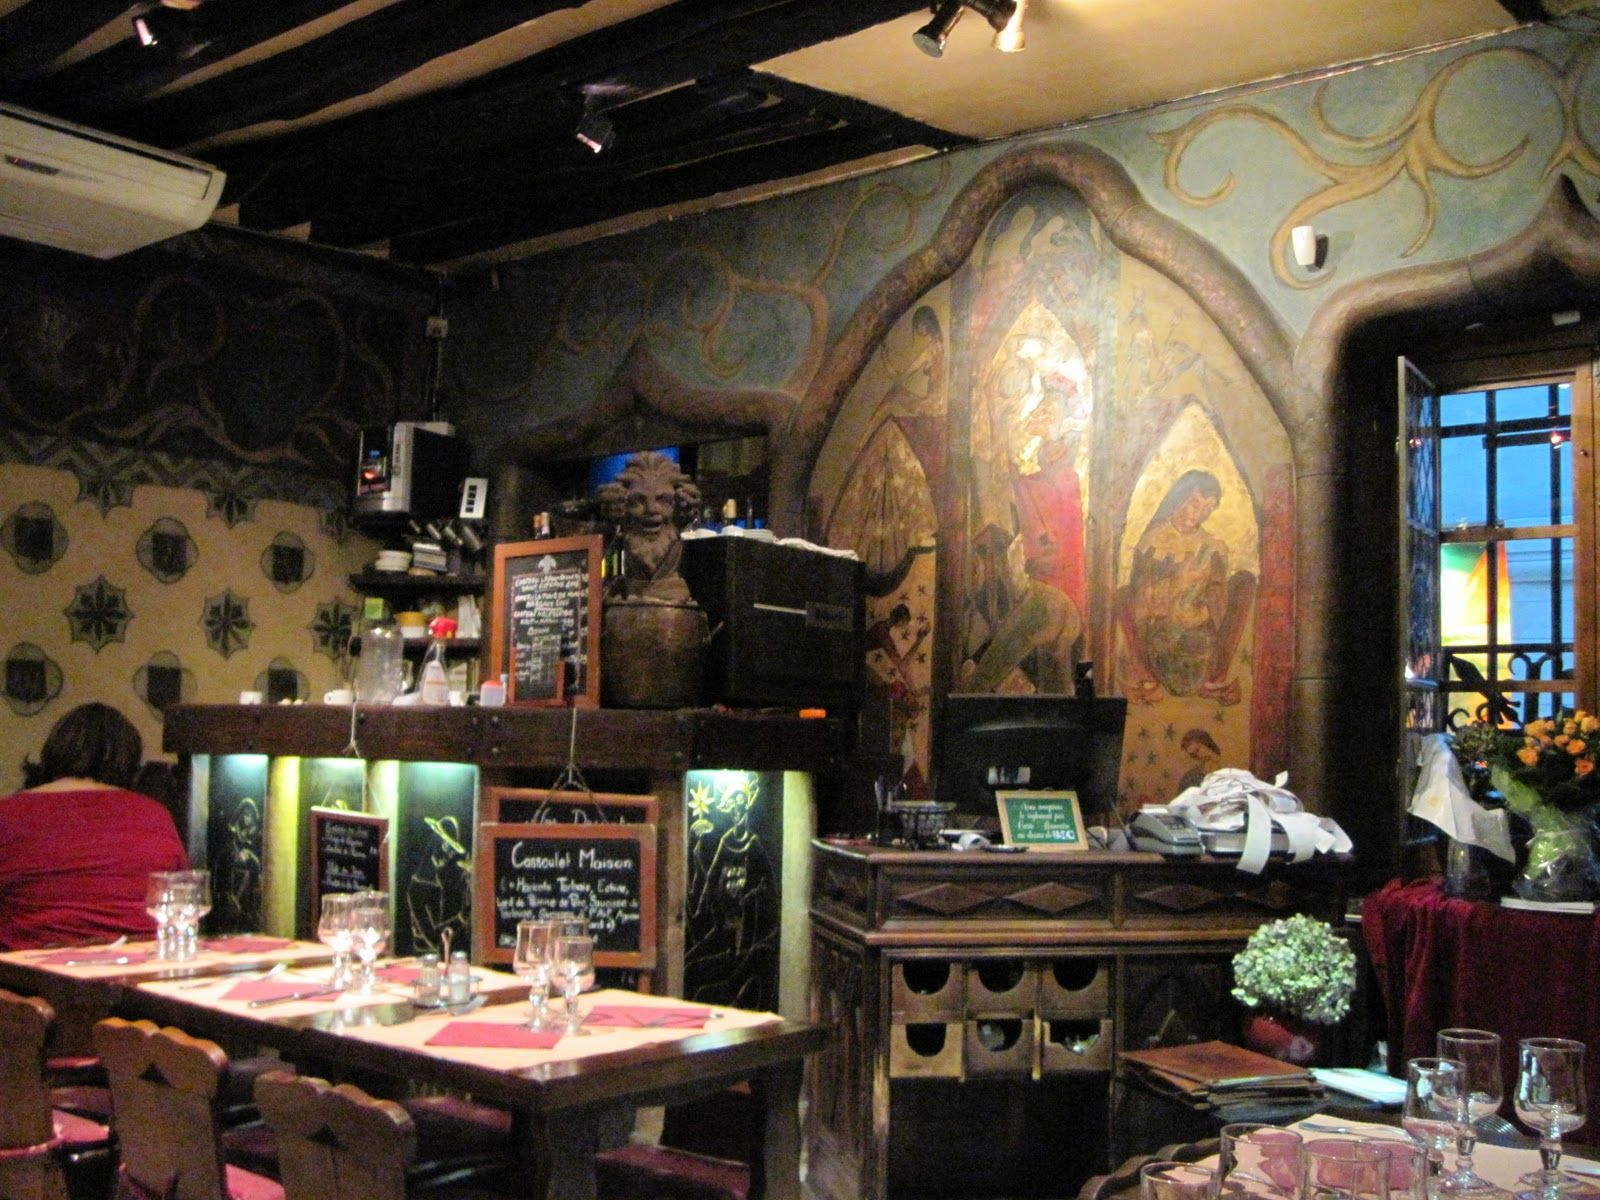 Aux Anysetiers Du Roy A Very Old French Restaurant On Ile St Louis Paris Just Love Sitting There And Looking At The Stuff Walls